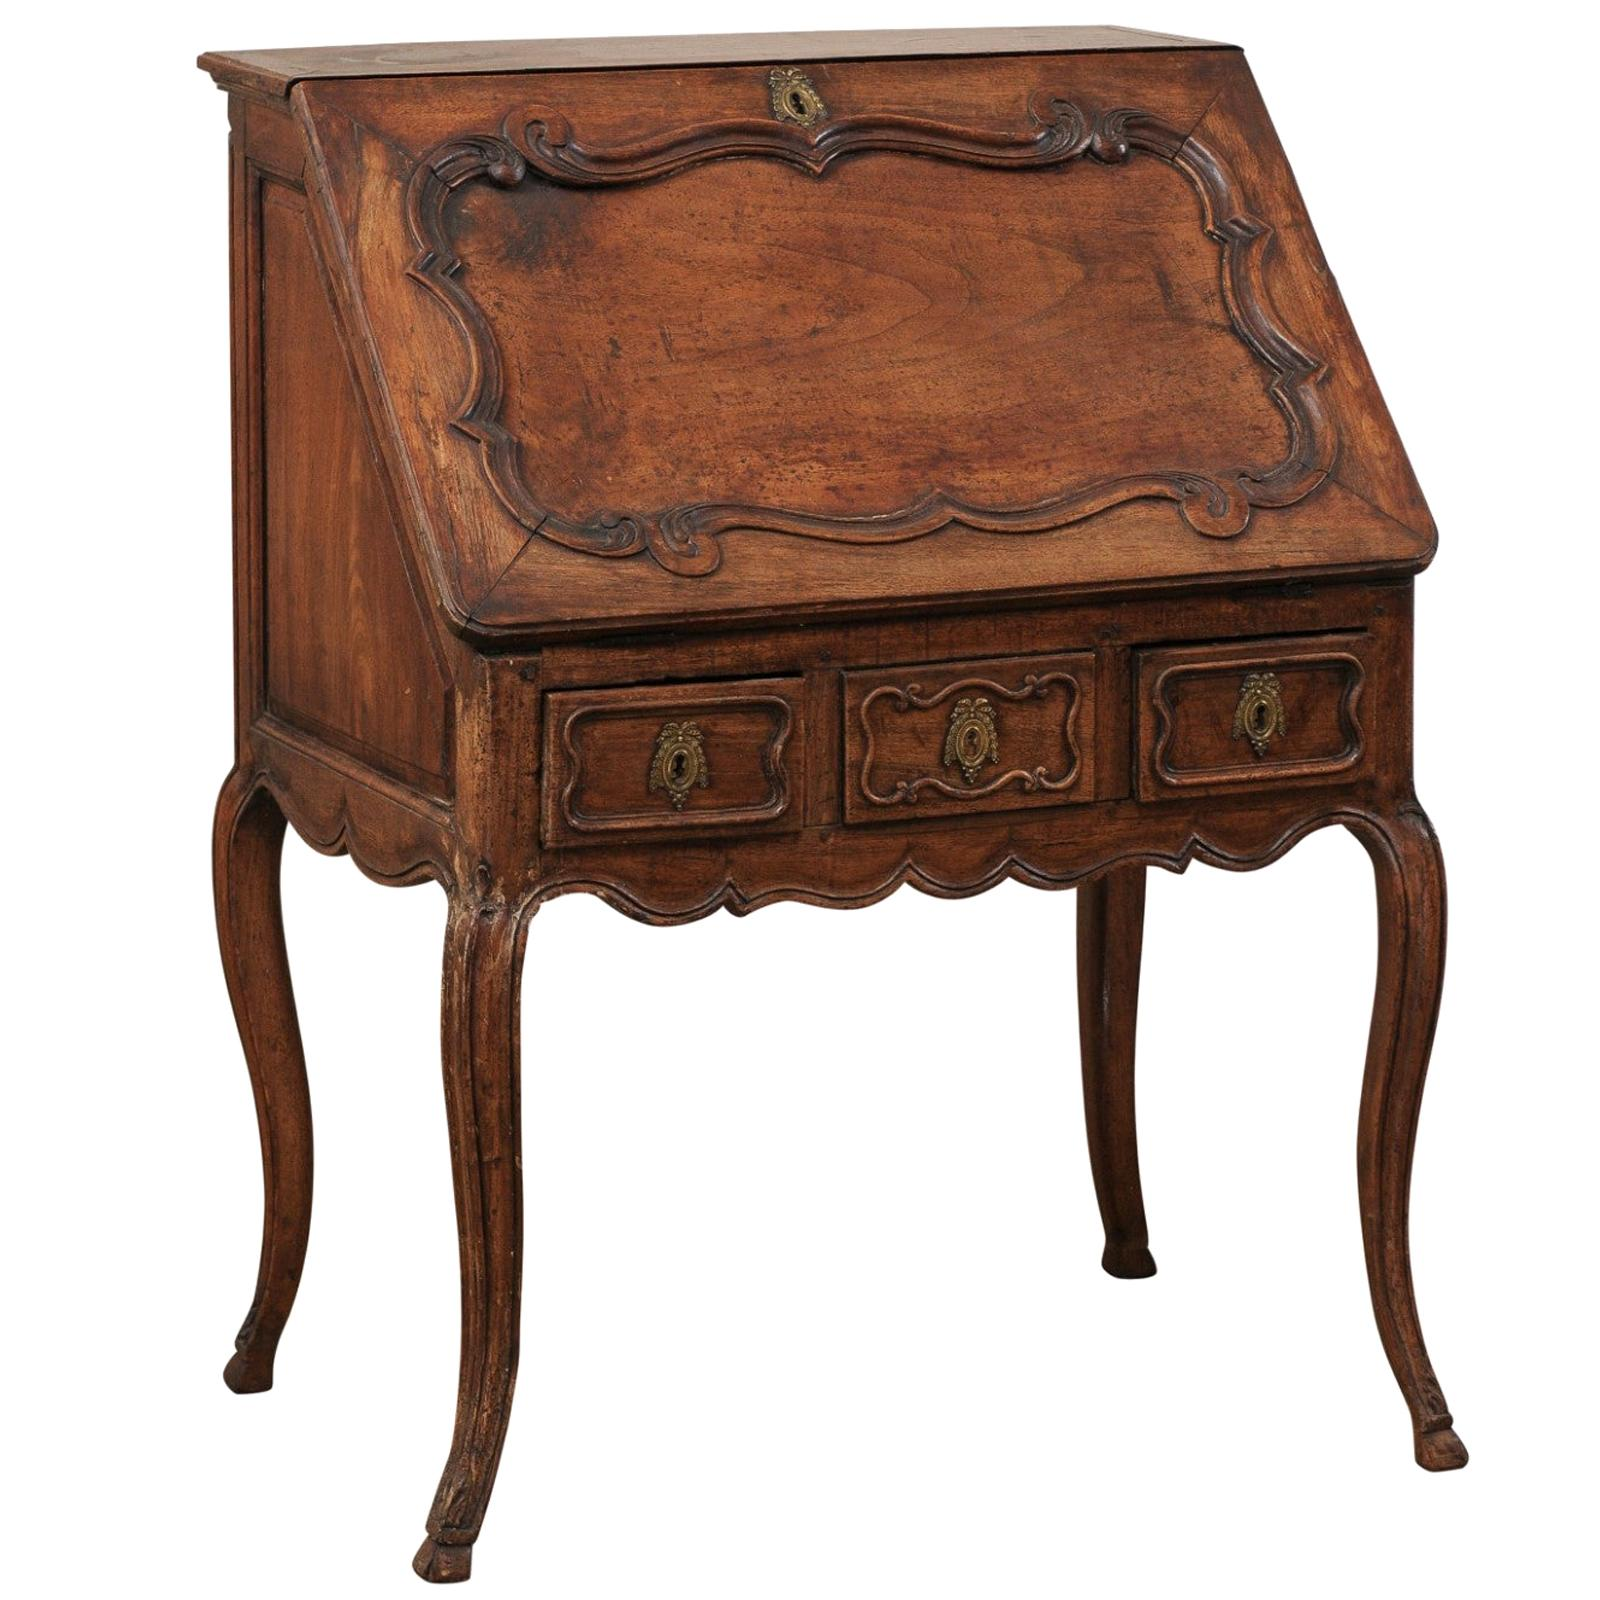 Elegant French Louis XV Period Secretary Writing Desk with Hidden Compartment